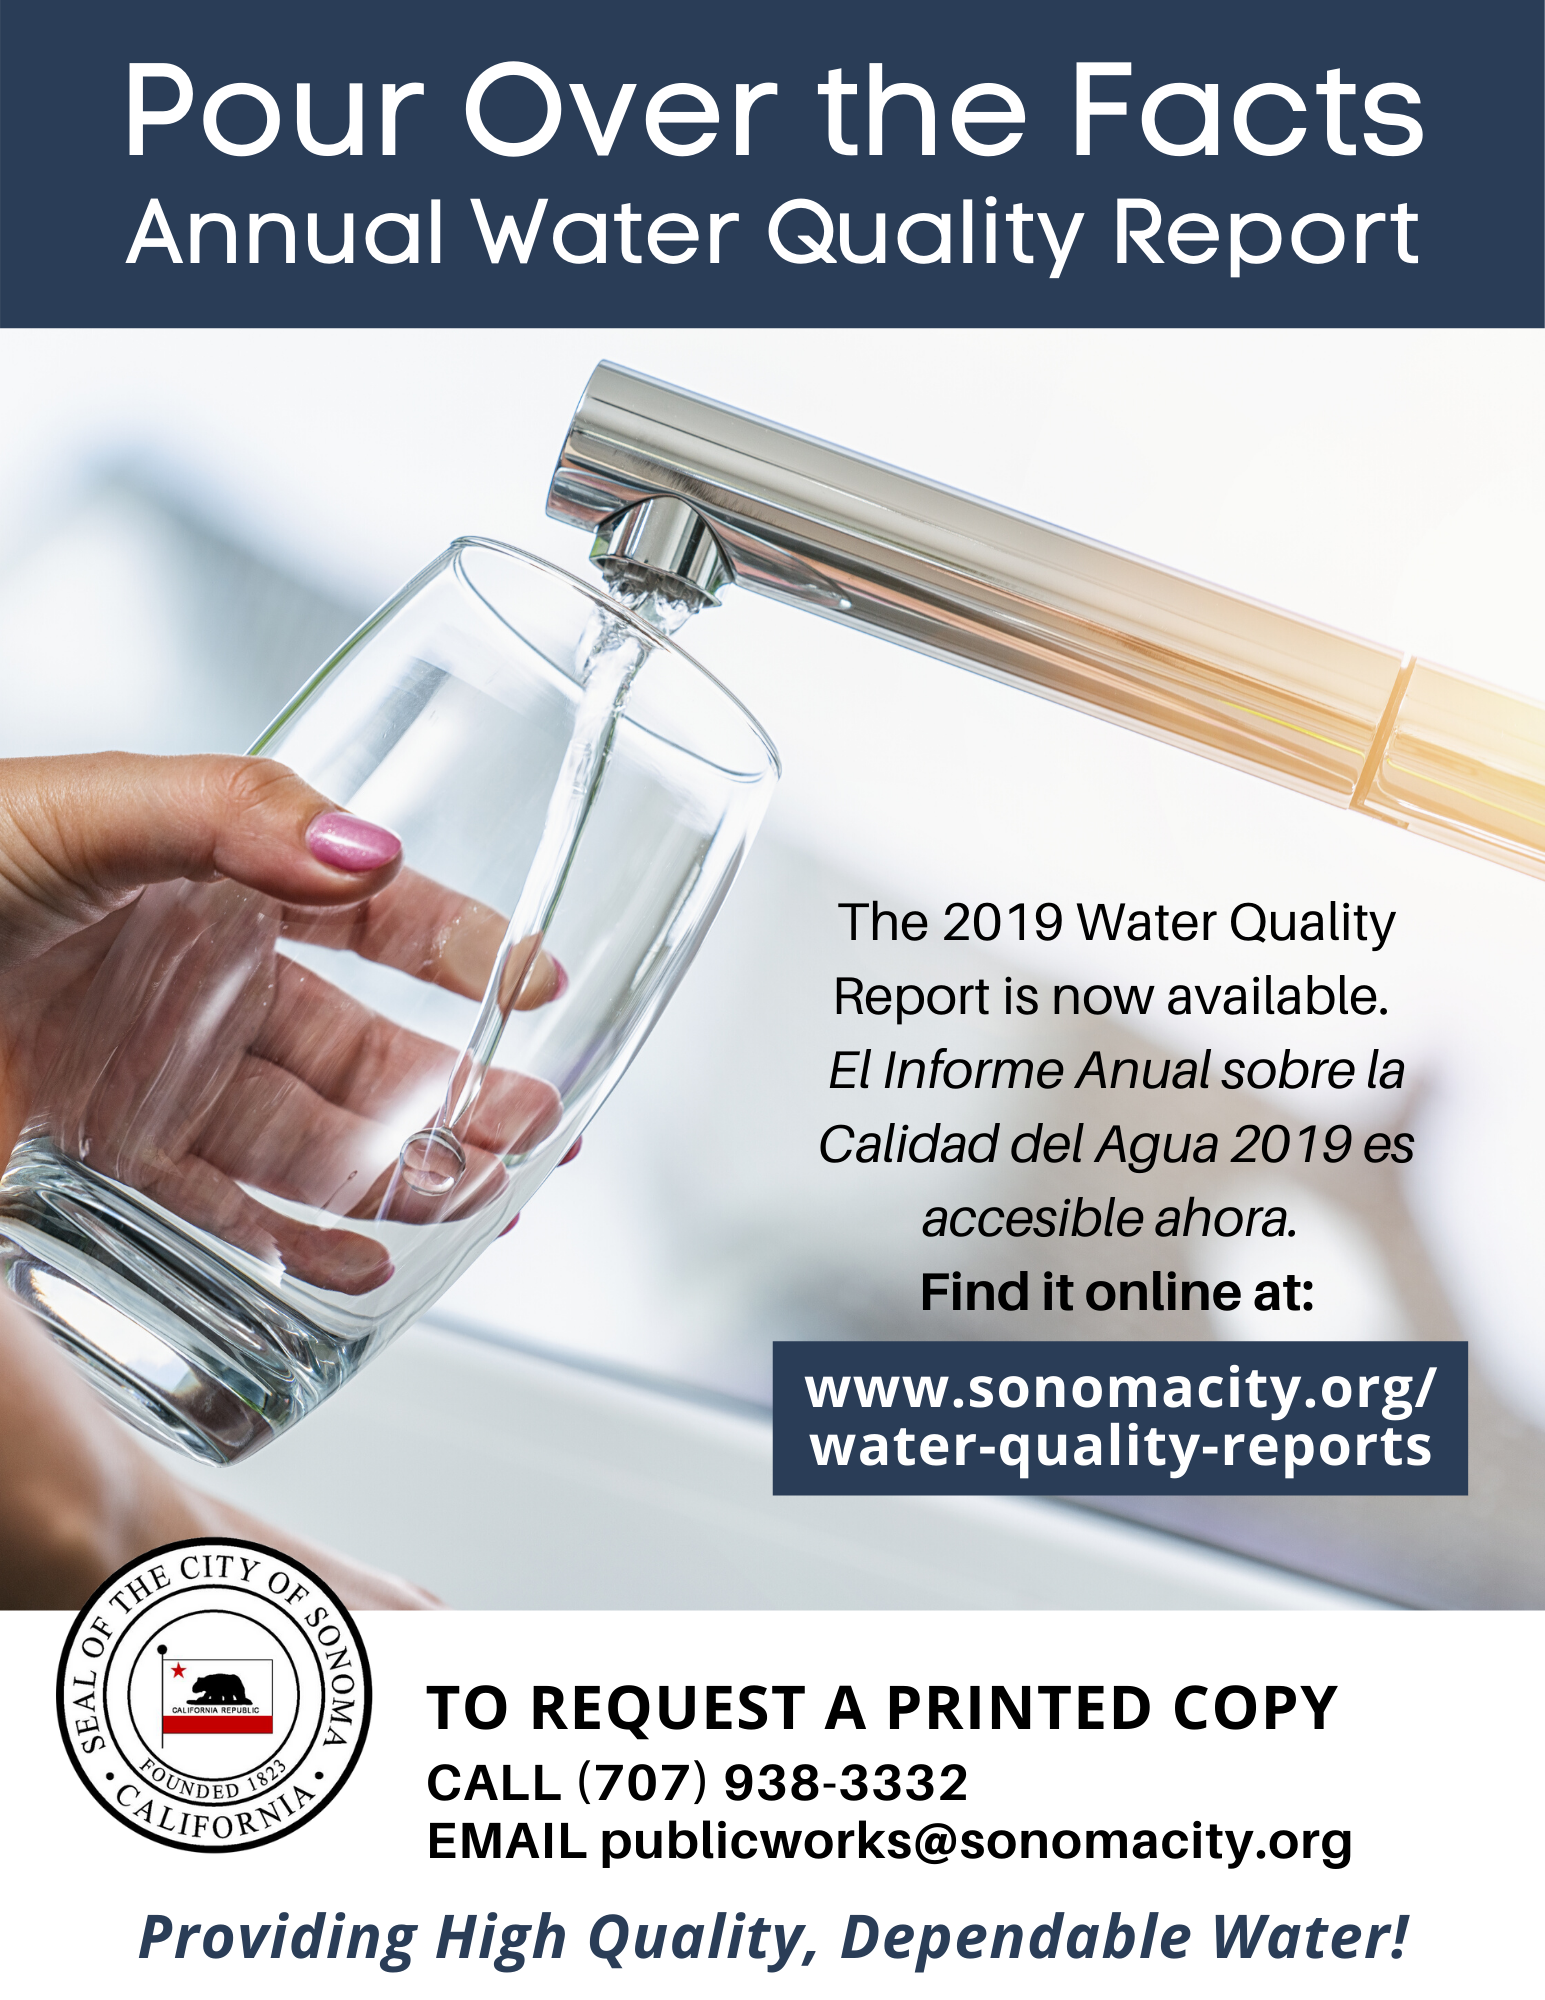 Pour Over the Facts, 2019 Water Quality Report